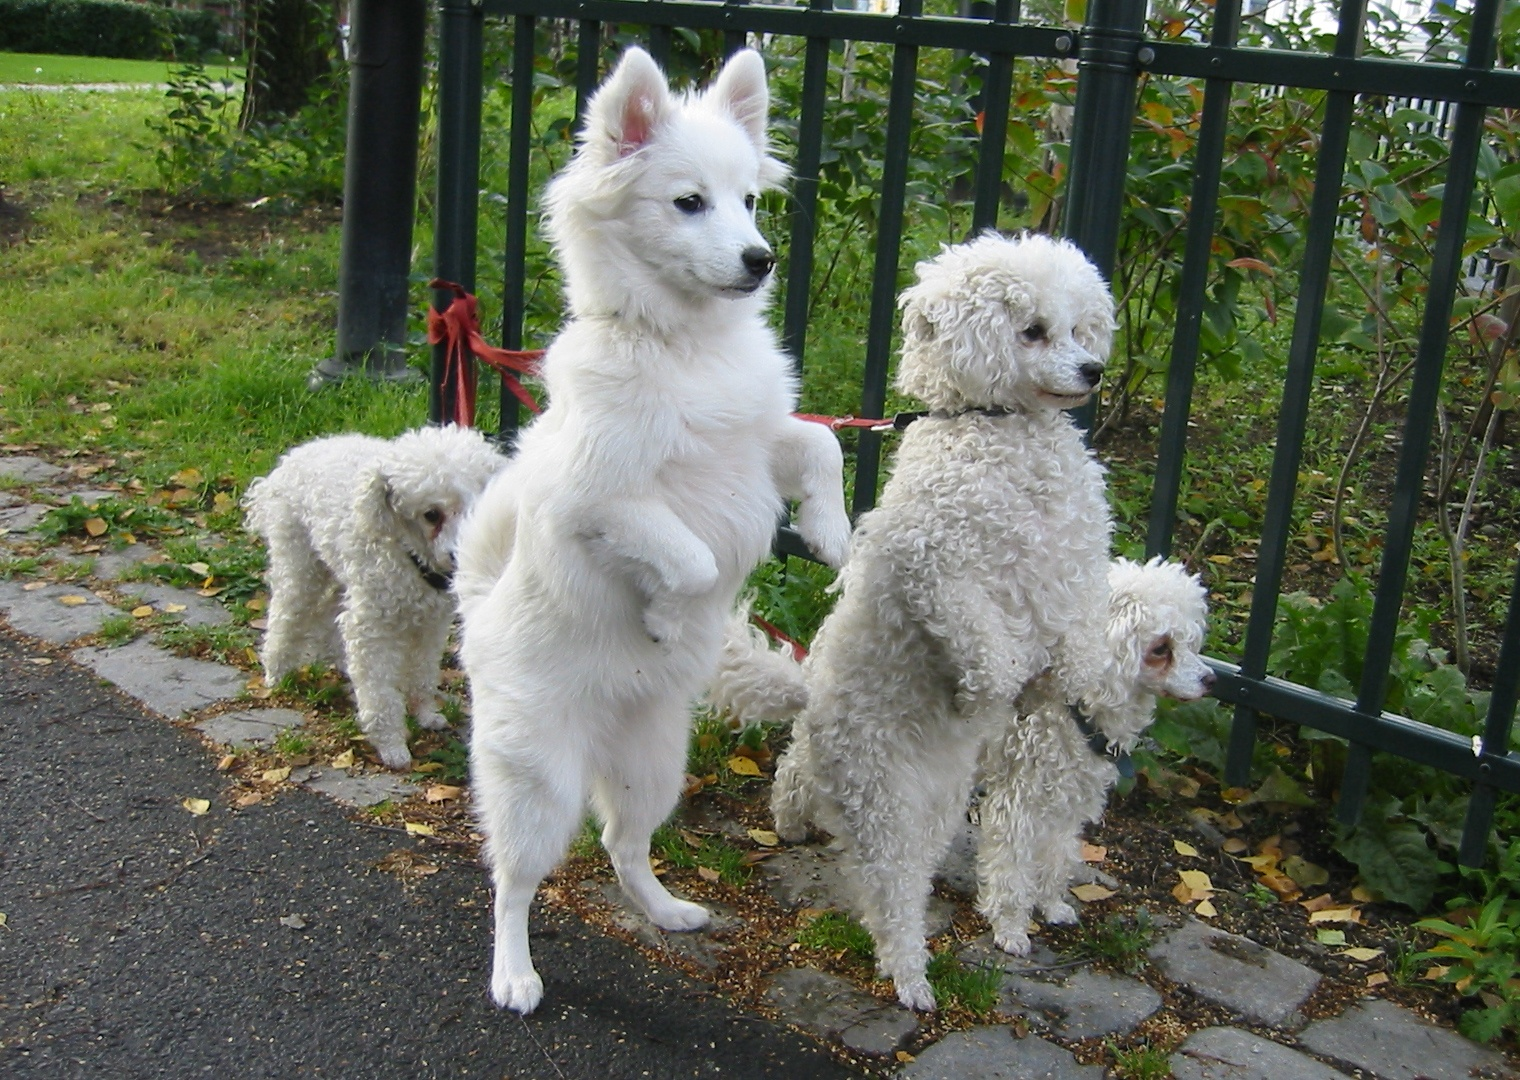 File:White dogs on hind legs.jpg